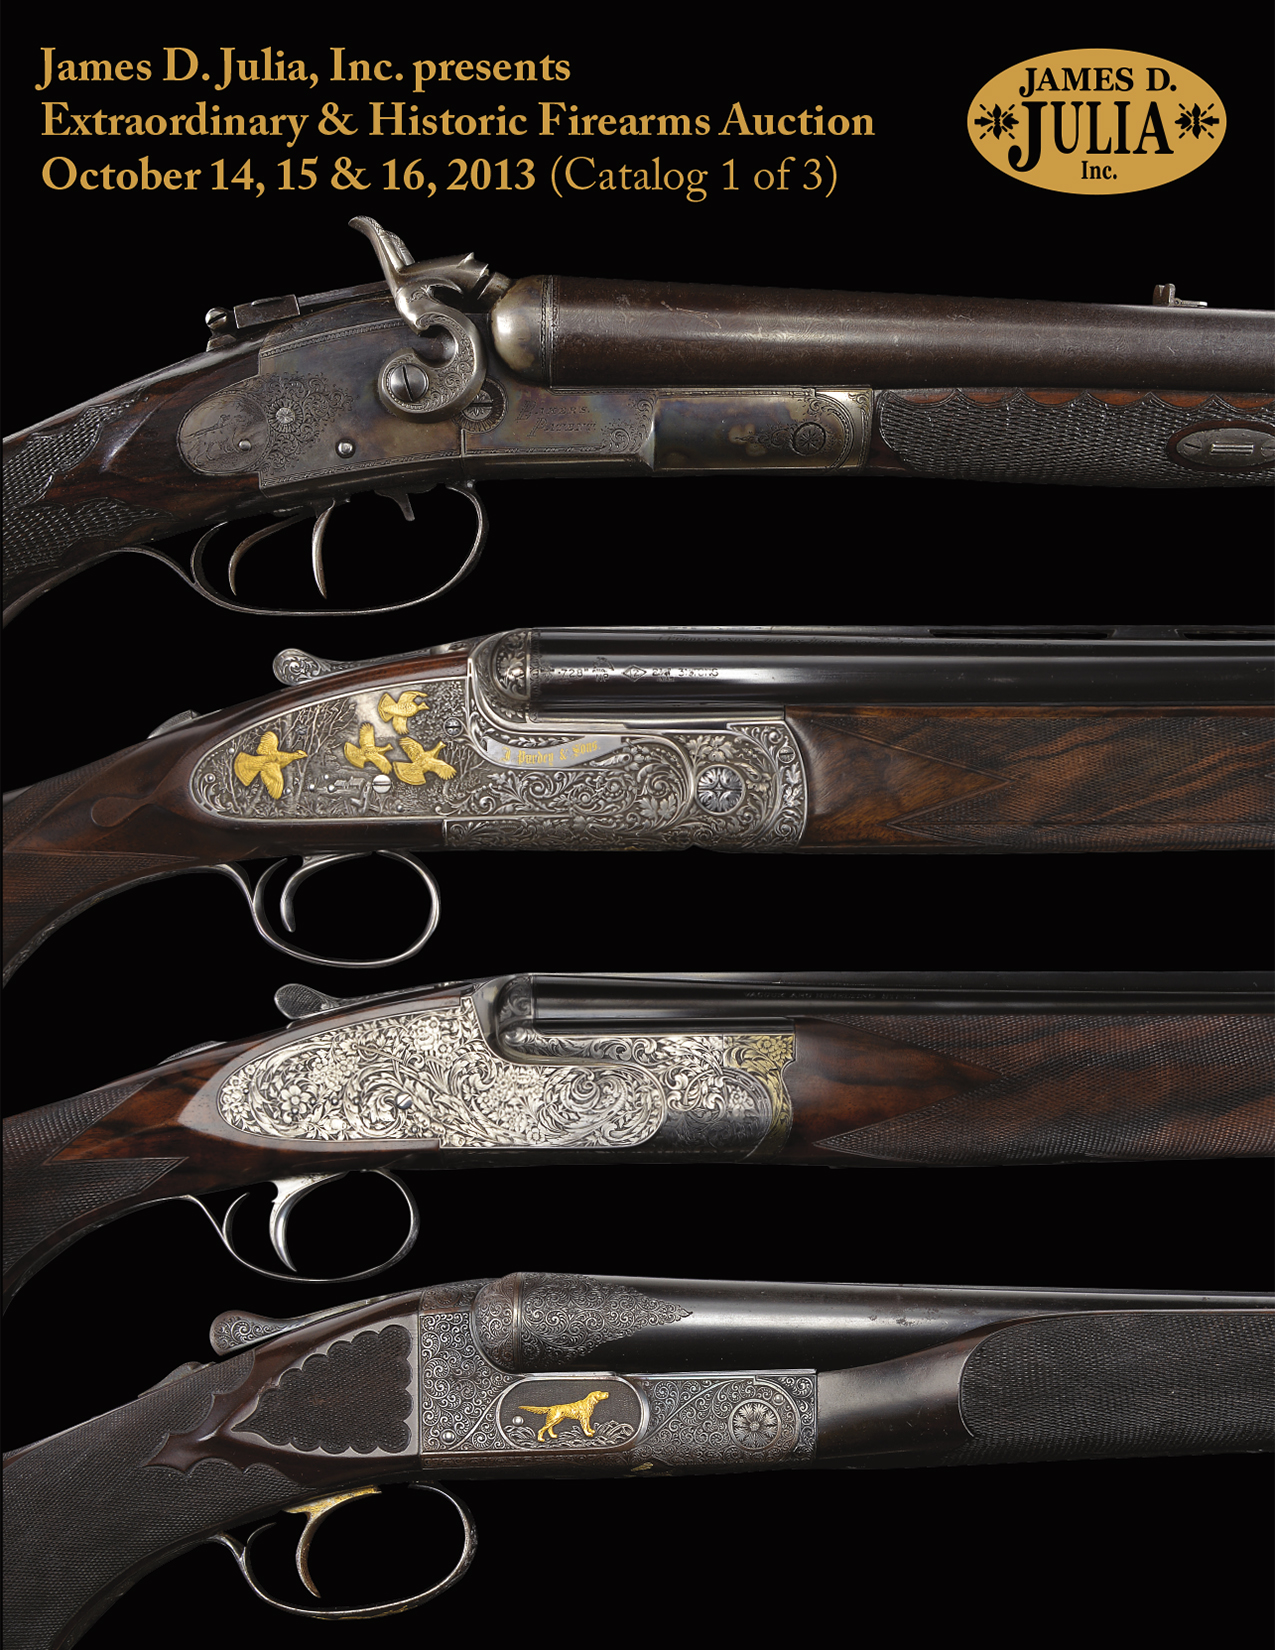 October 2013 Firearms Catalog Cover